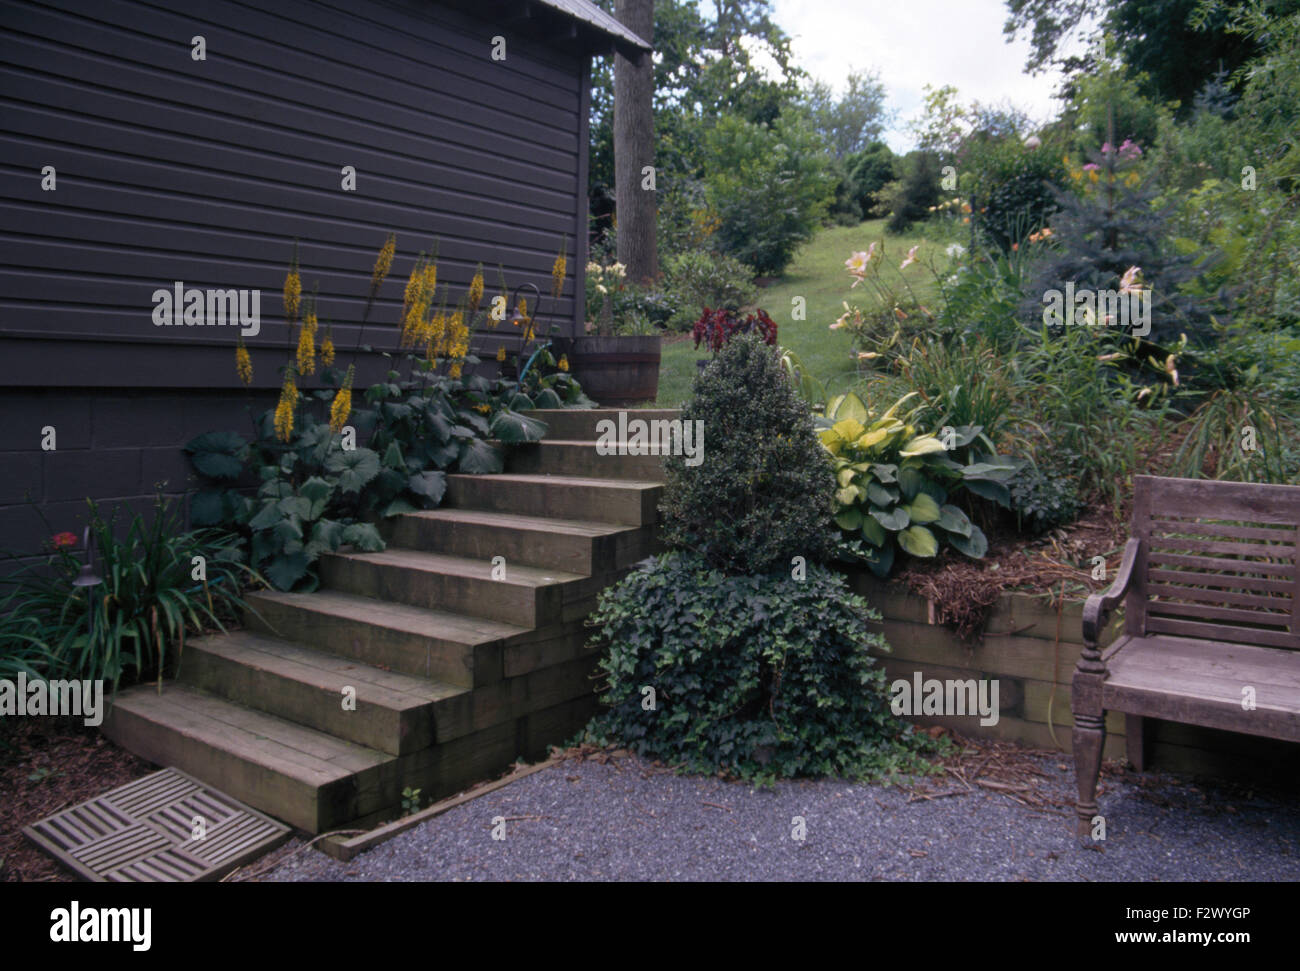 Yellow ligularia growing beside a house and steps above a patio with a small conifer in a pot with trailing ivy - Stock Image